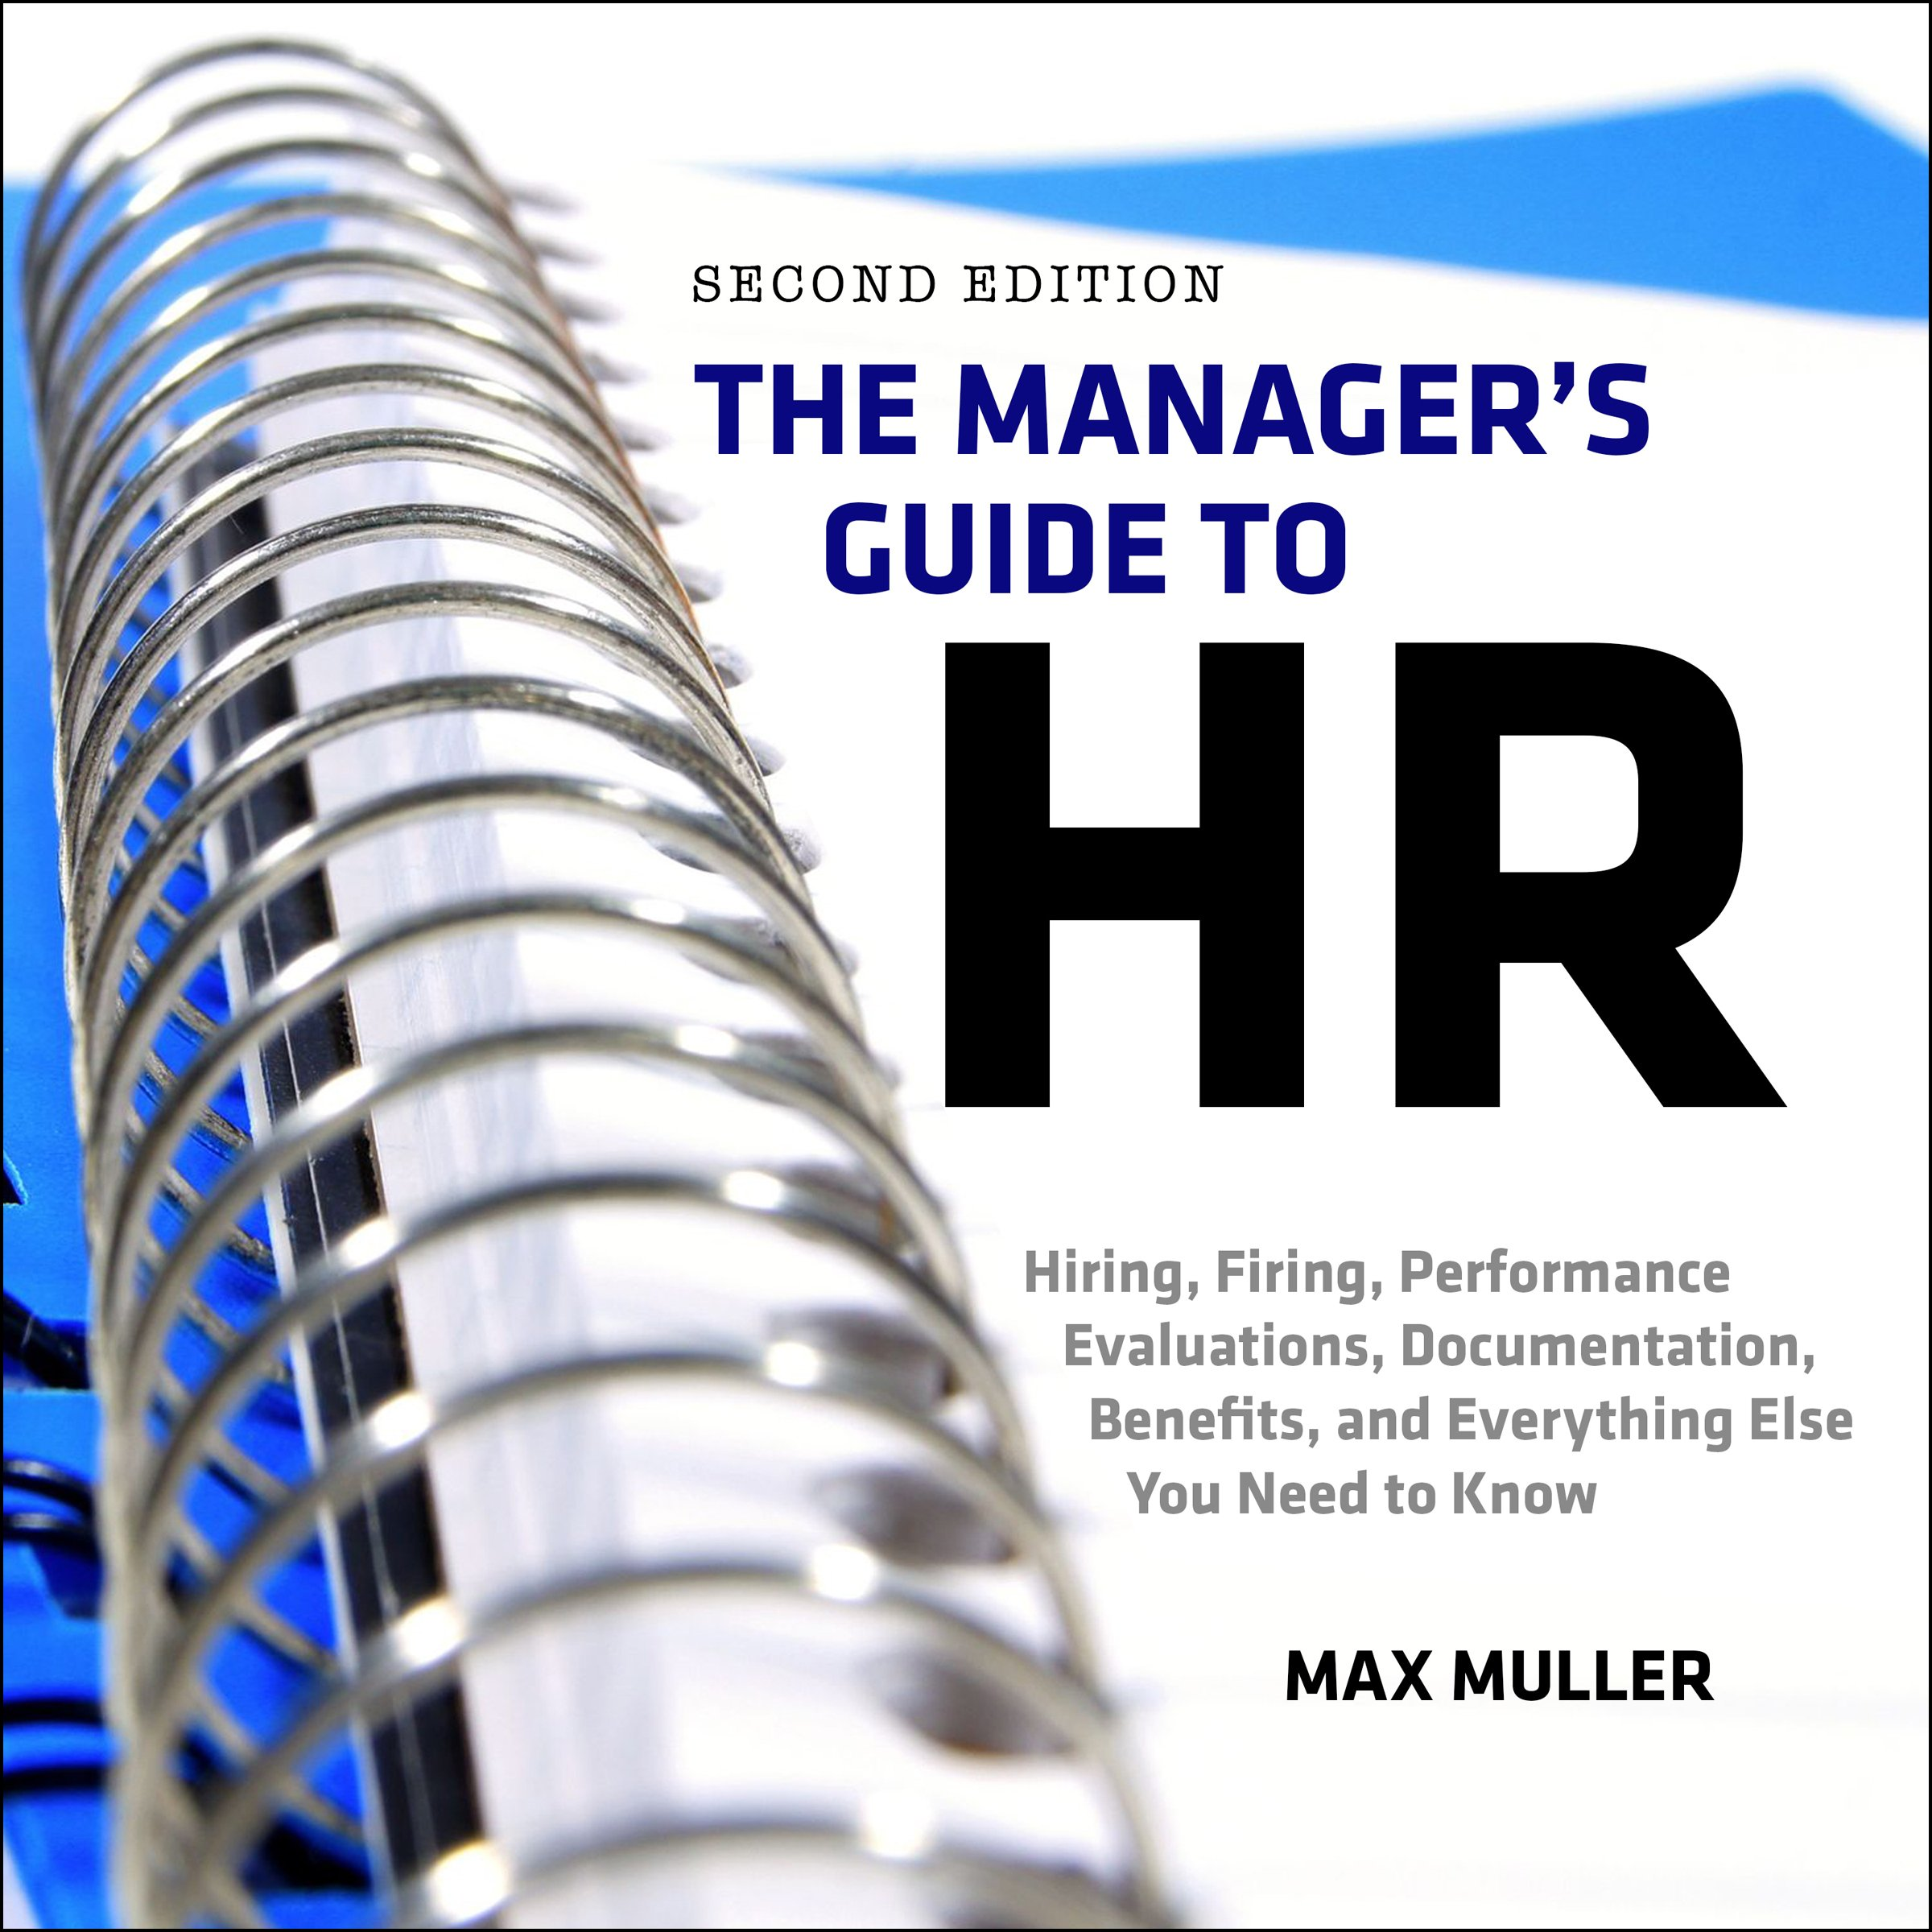 Image OfThe Manager's Guide To HR: Hiring, Firing, Performance Evaluations, Documentation, Benefits, And Everything Else You Need ...